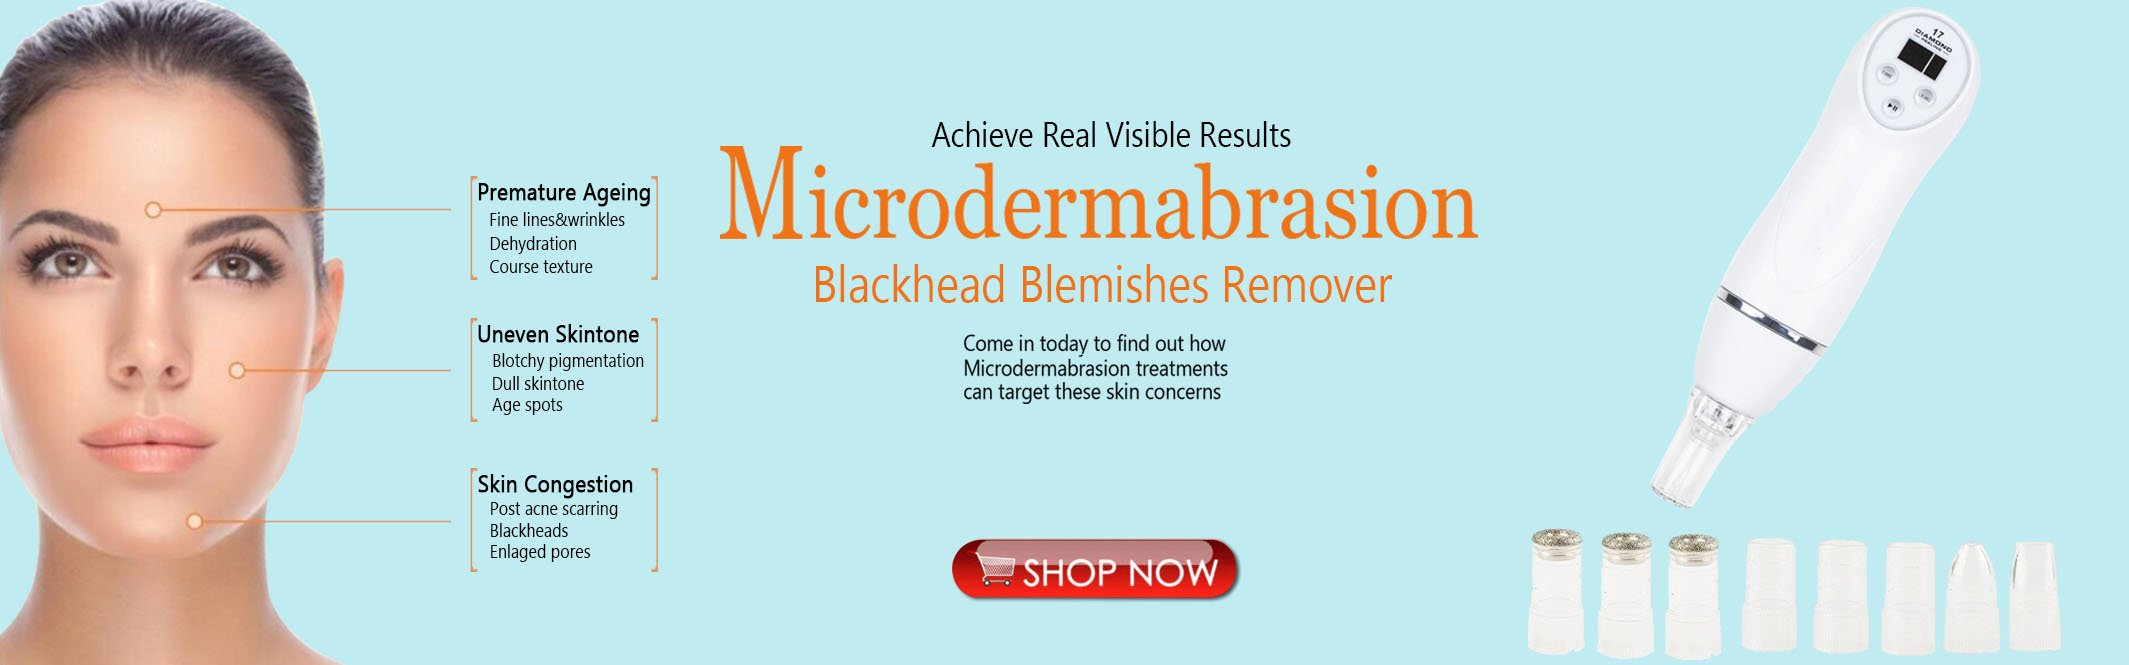 AleoBeauty microdermabrasion and blackhead remover